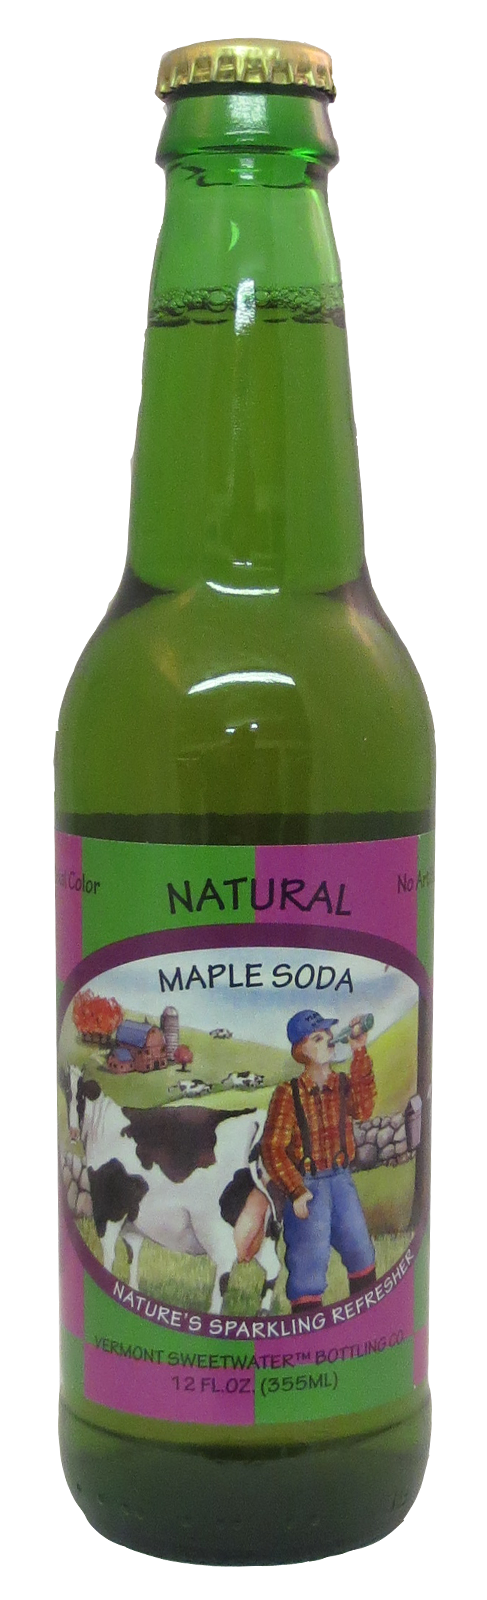 Vermont Sweetwater Maple Soda